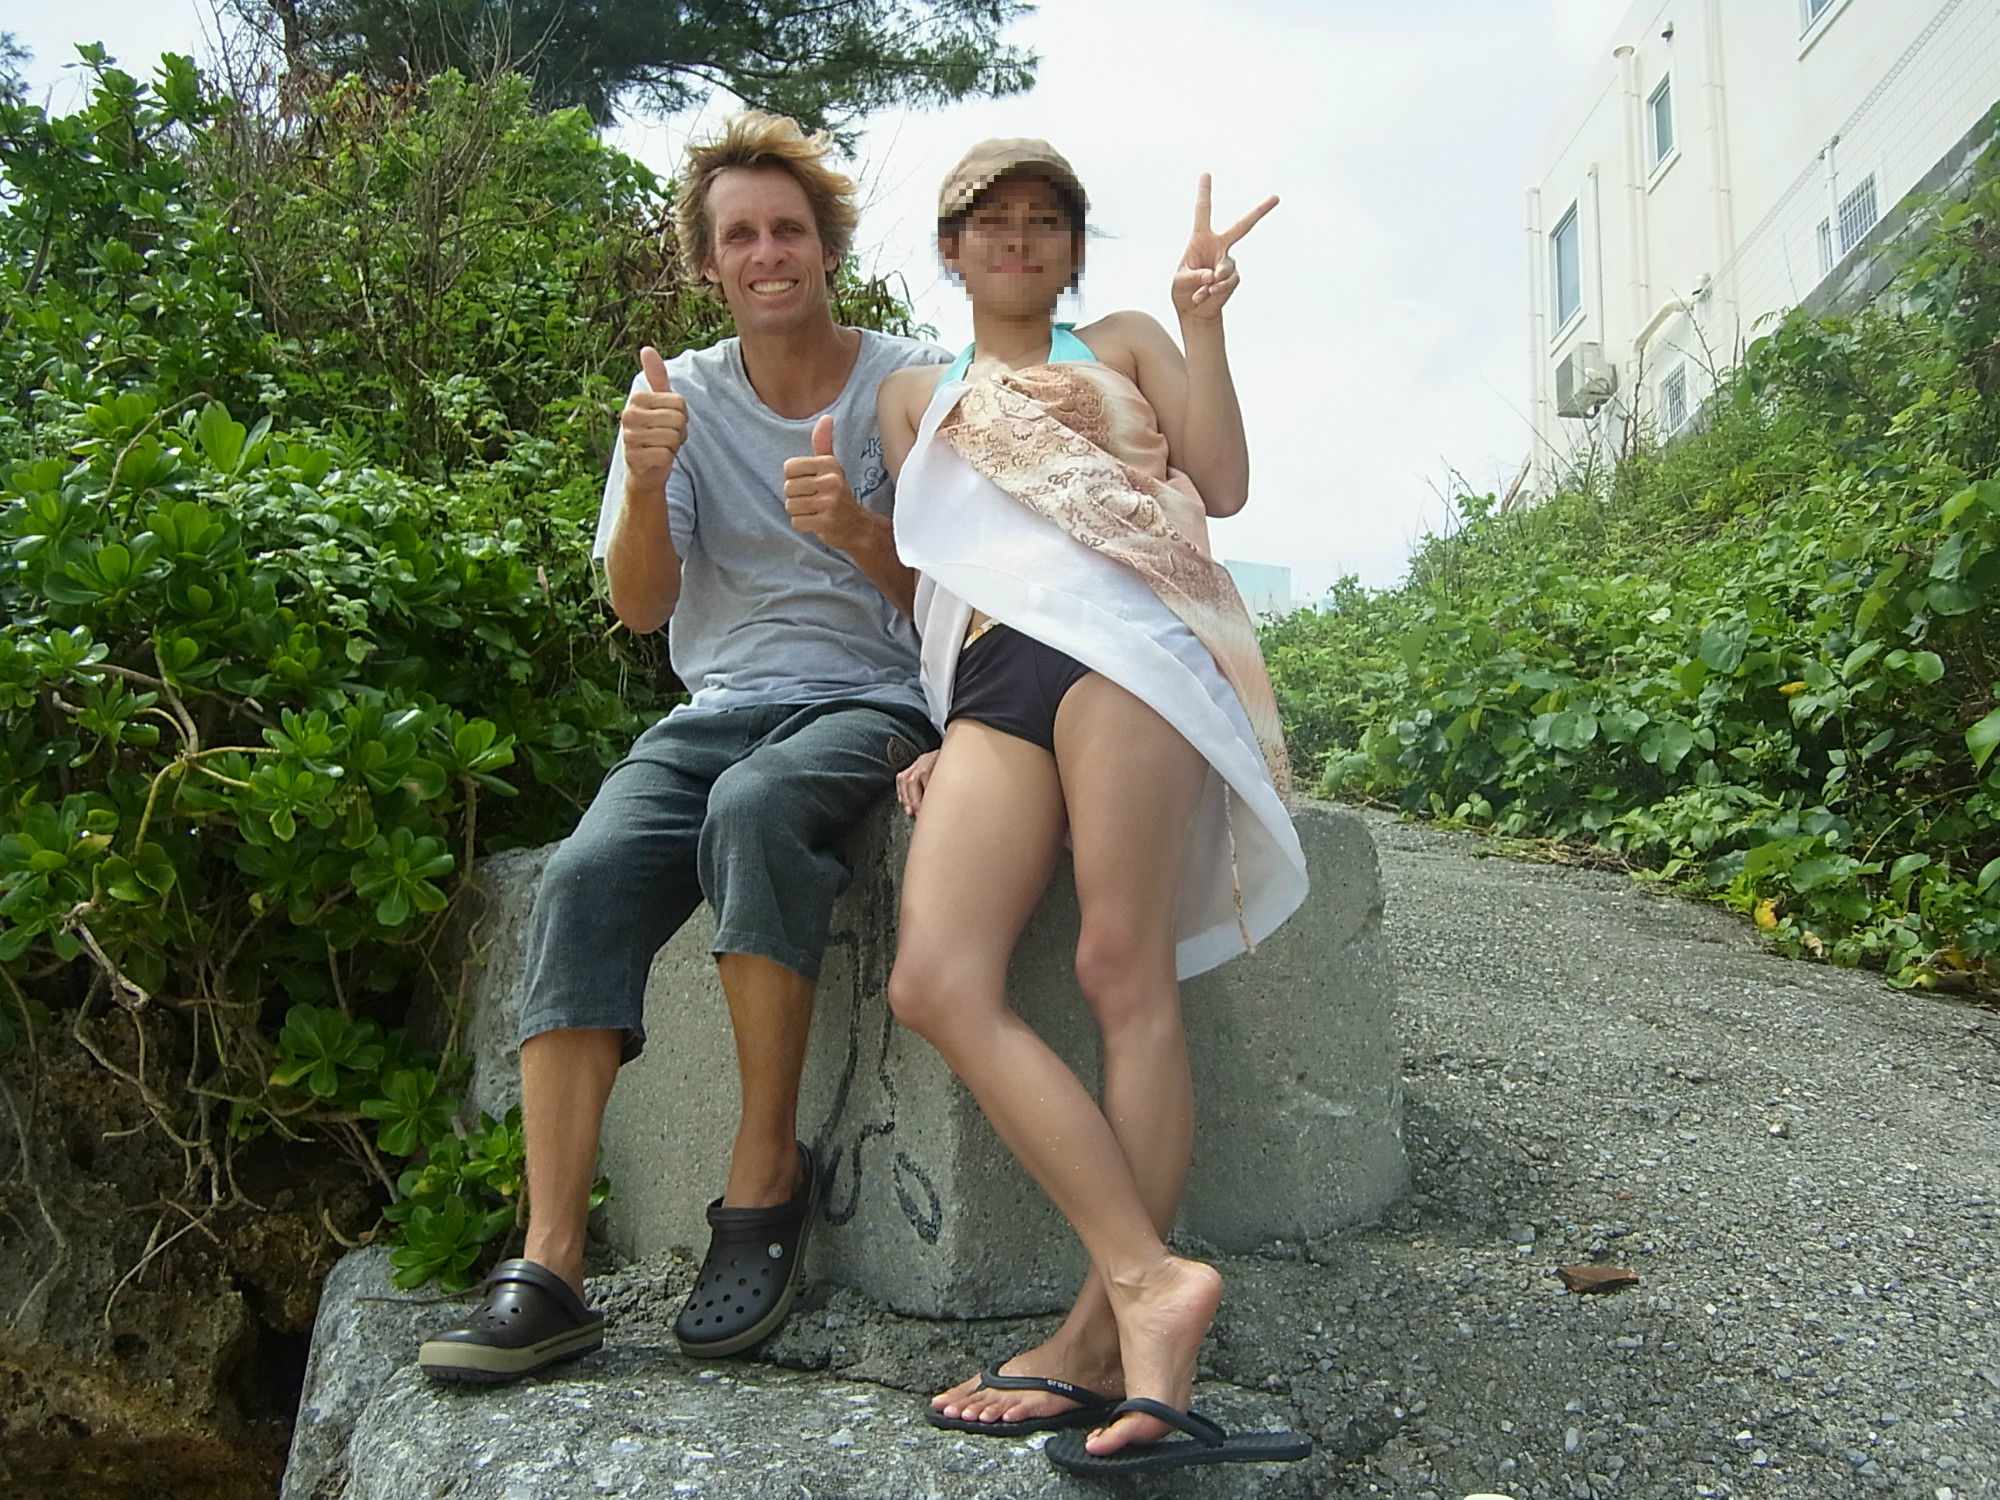 Surfing in Japan for Housewives : Danny Melhado of Happy Surfing